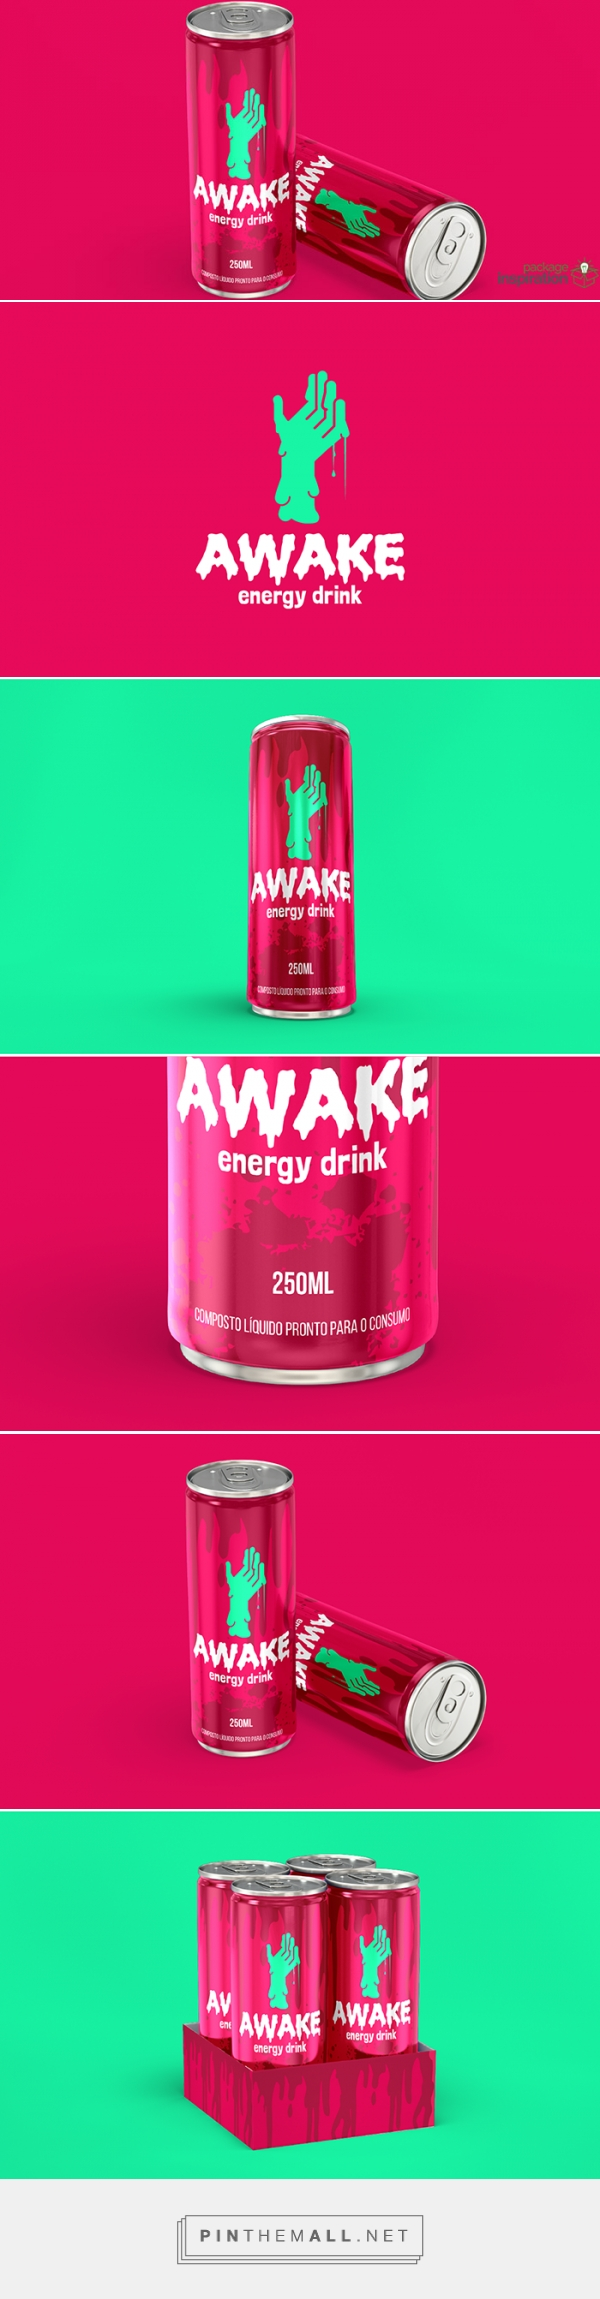 Awake Energy Drink - Daily Package Design InspirationDaily ...